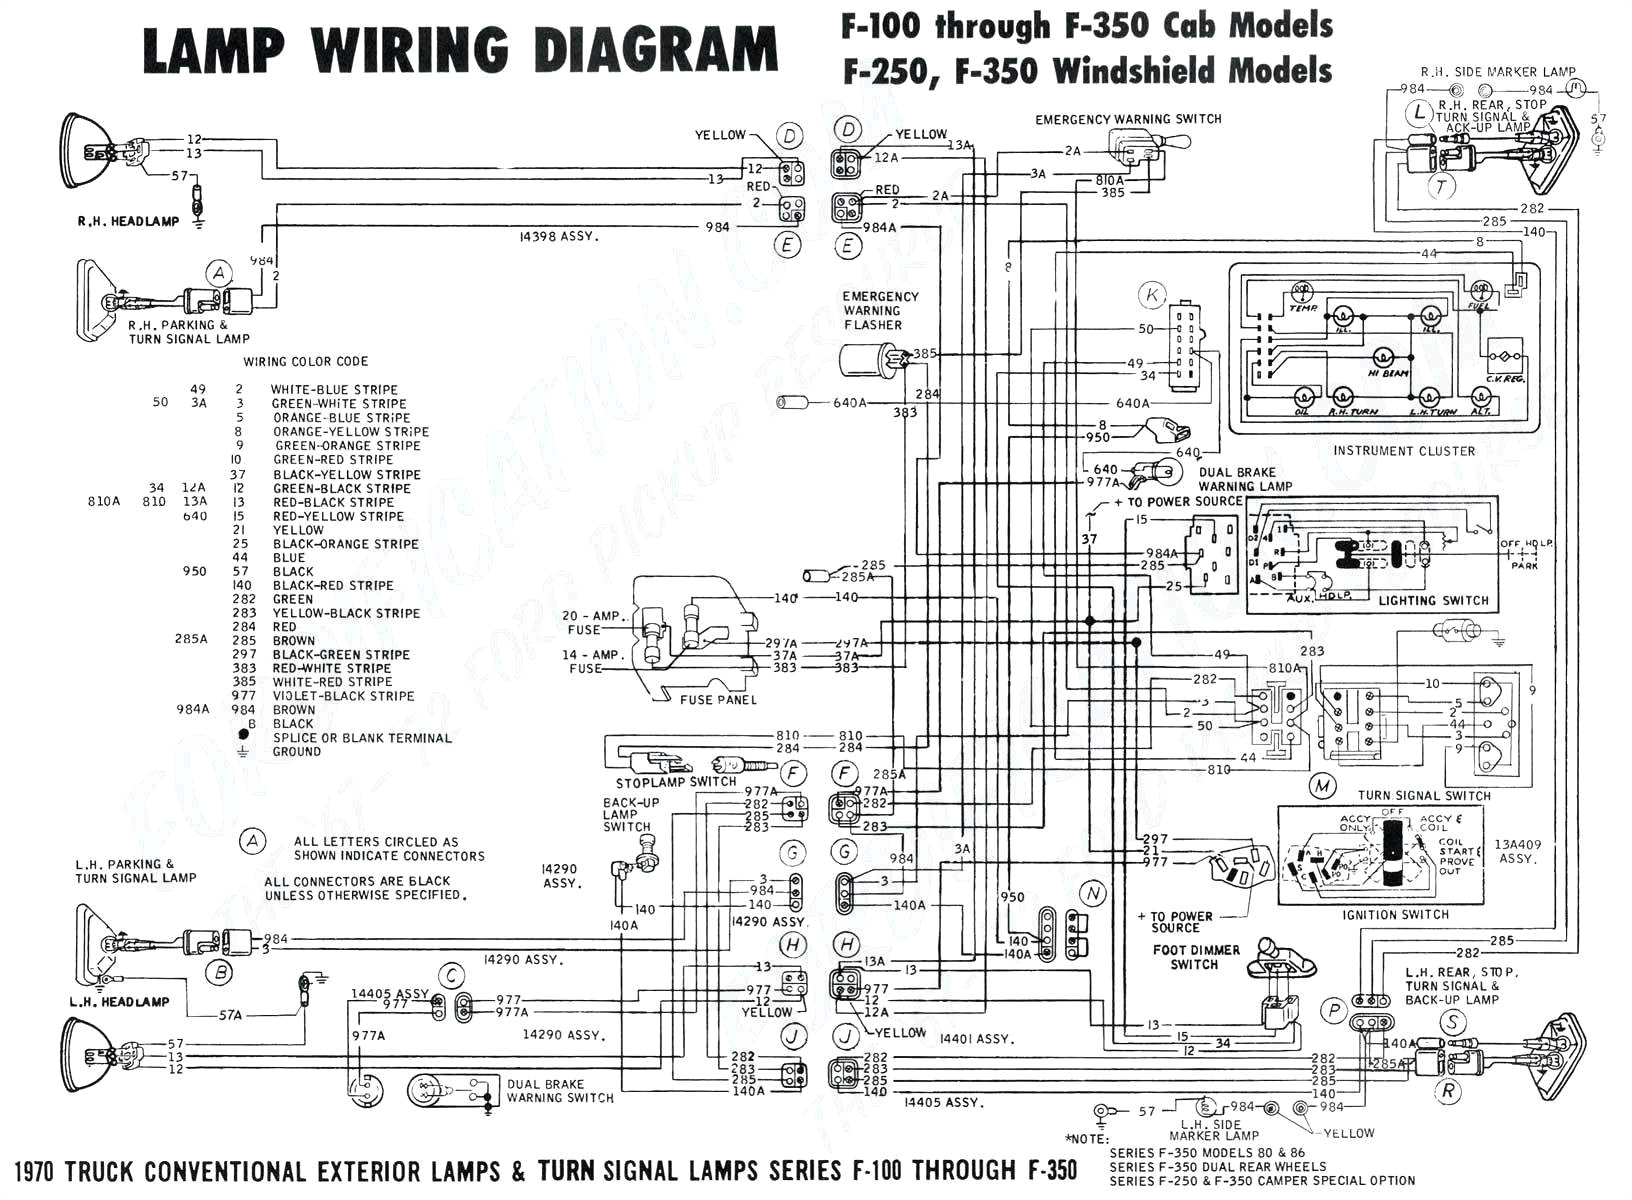 Ford Duraspark 2 Wiring Diagram ford Wiring Harness Wiring Diagram Database